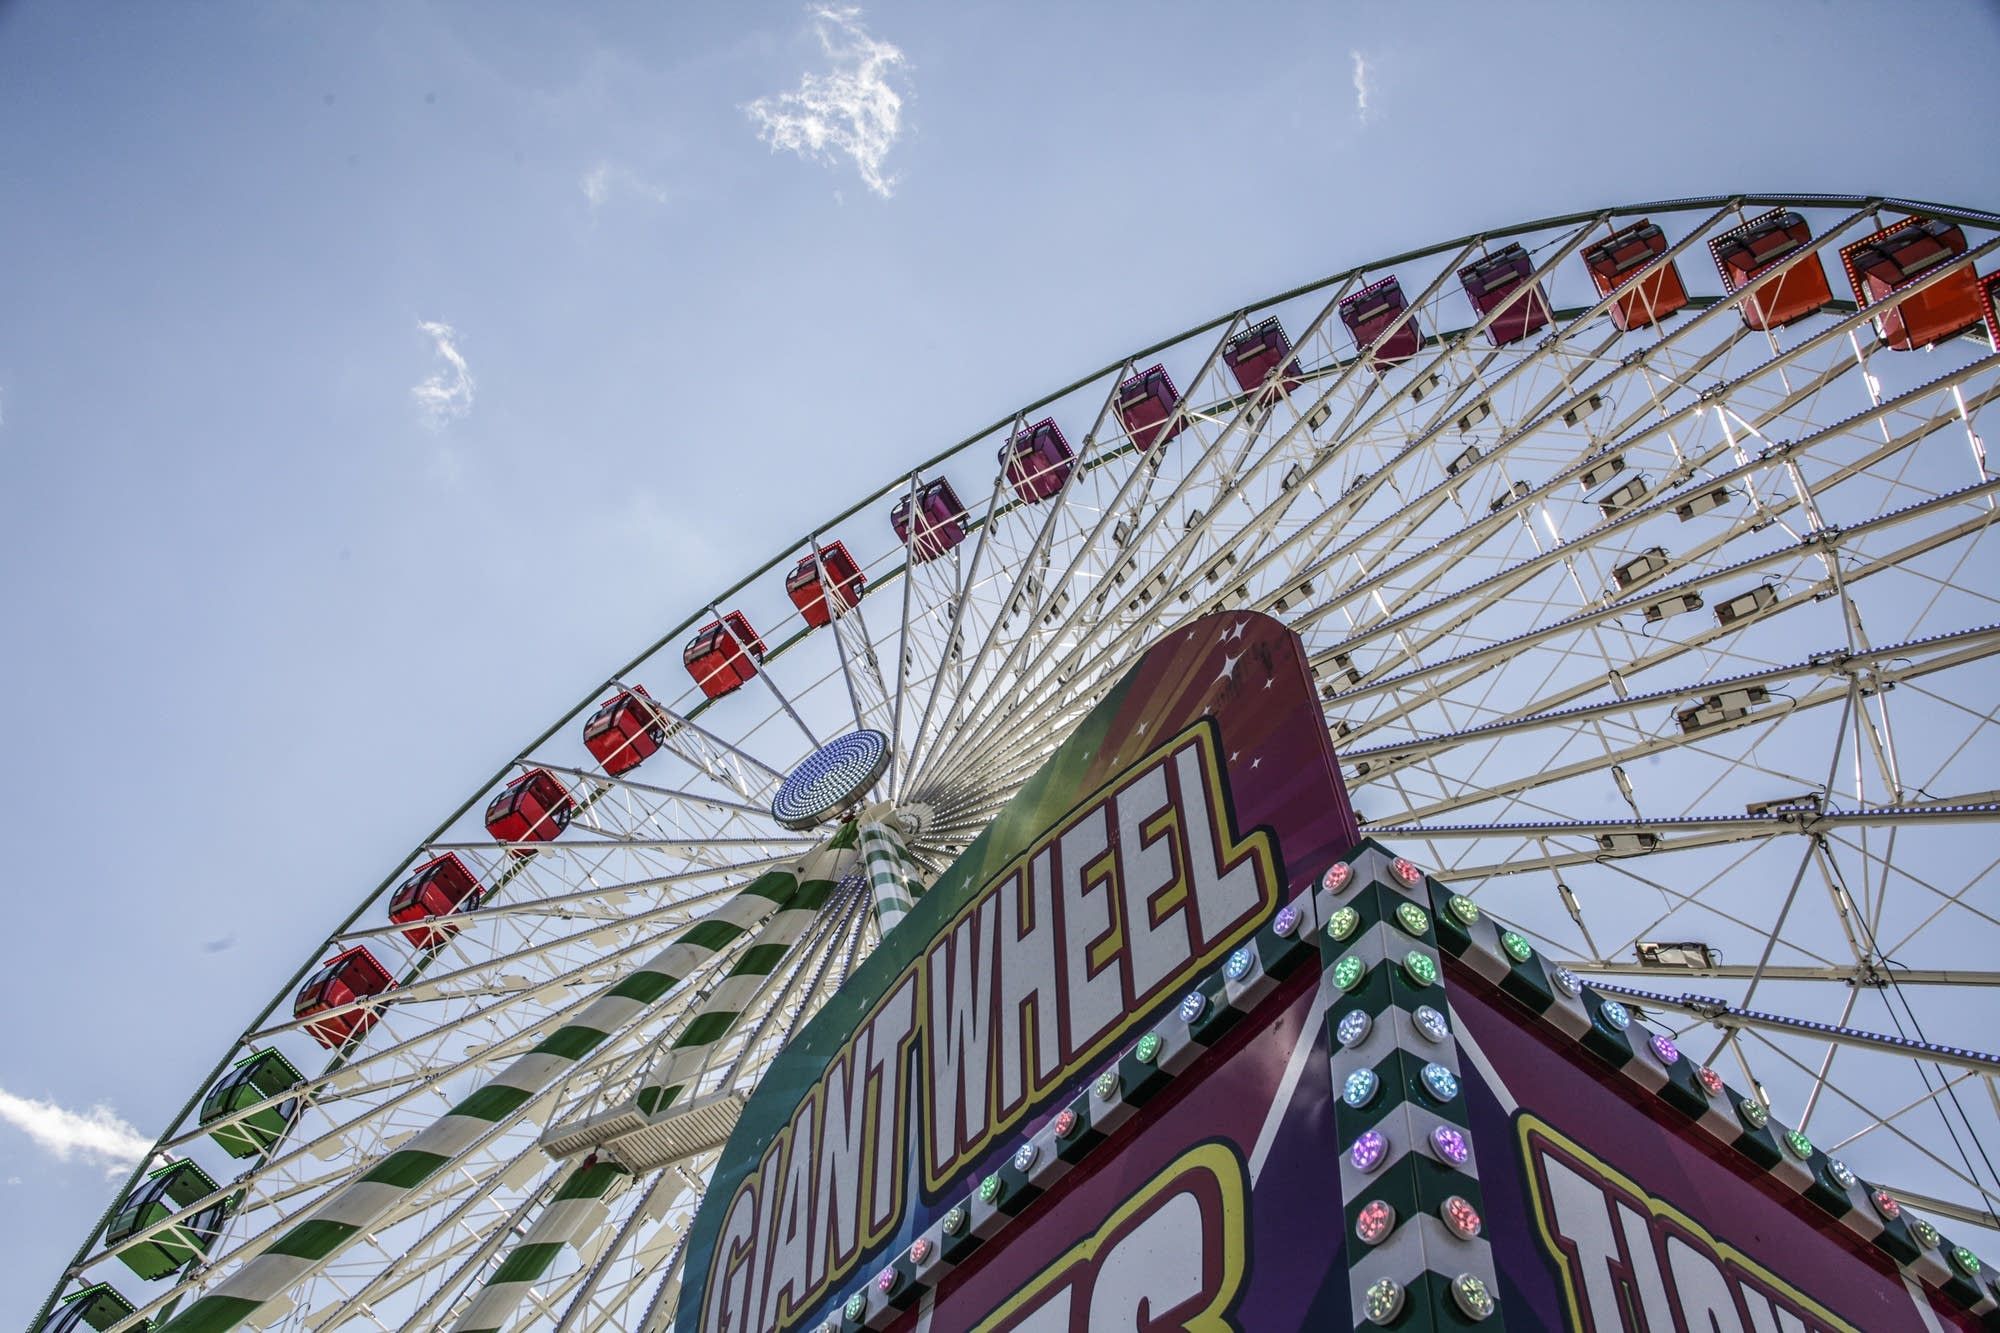 The Big Wheel is the largest portable wheel in North America.